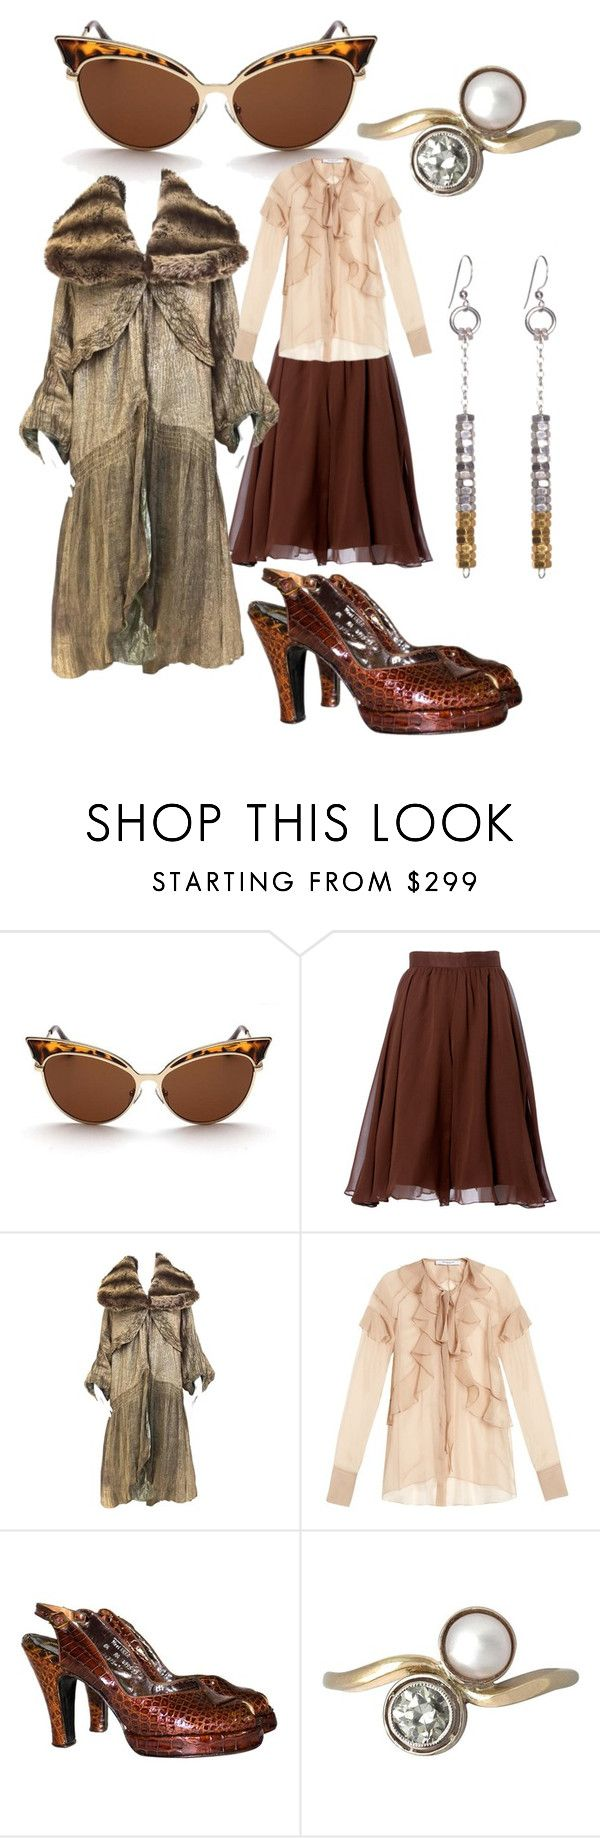 """2016 Just me Being Me"" by michelle858 ❤ liked on Polyvore featuring Carolina Herrera, Givenchy and Alice Menter"